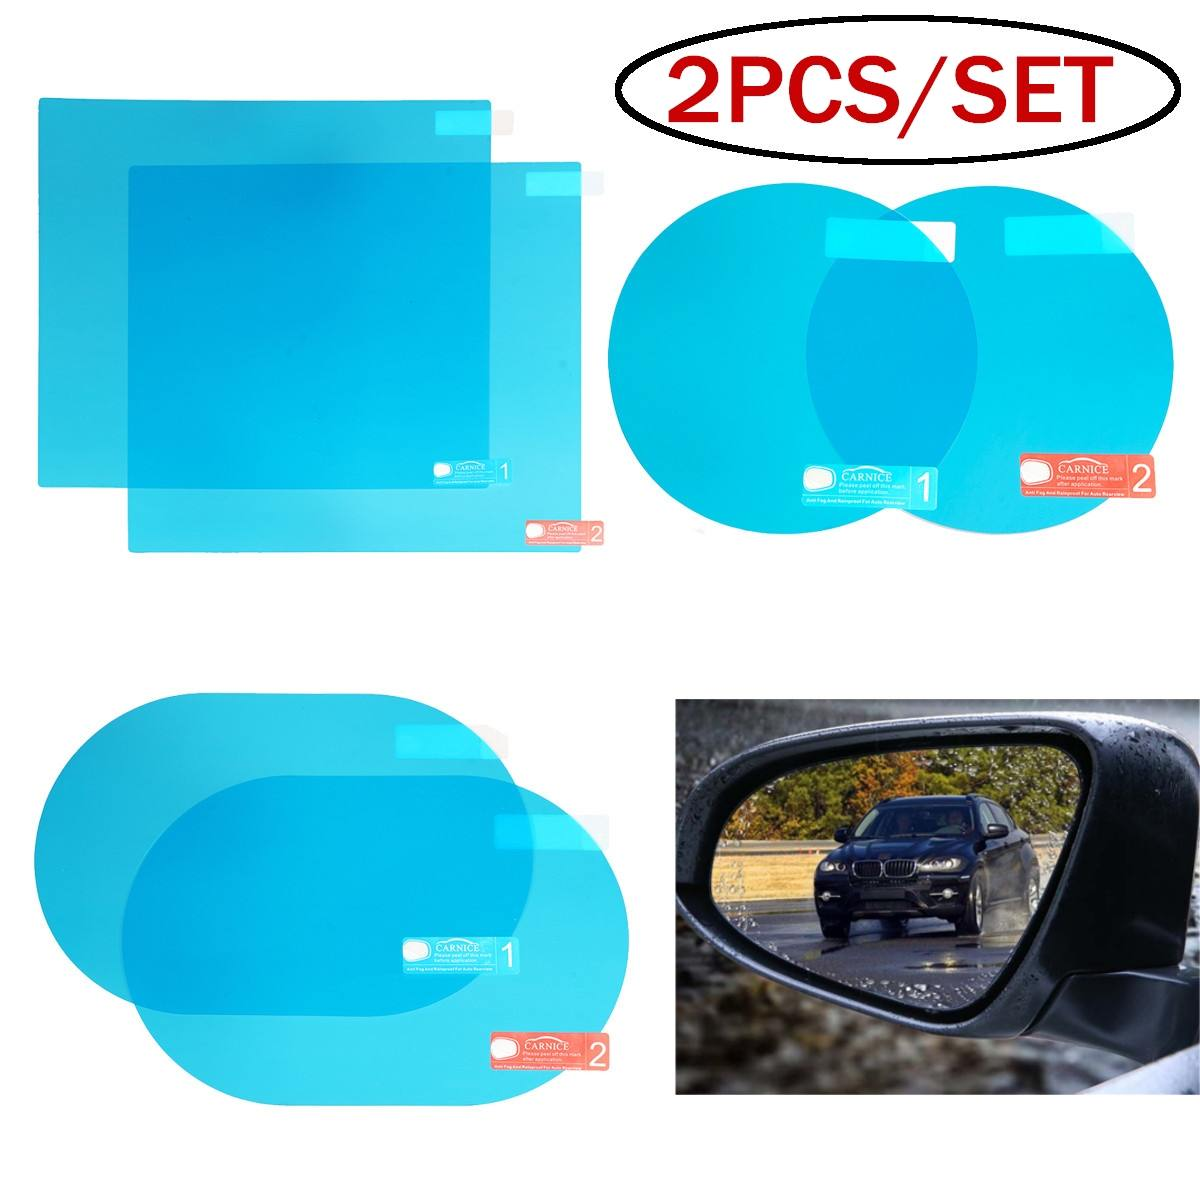 2pcs Car Rearview Mirror Protective Film Anti Fog Window Foils Rainproof Rear View Mirror Protective Film Ideal Gift For All Occasions Mirror & Covers Automobiles & Motorcycles